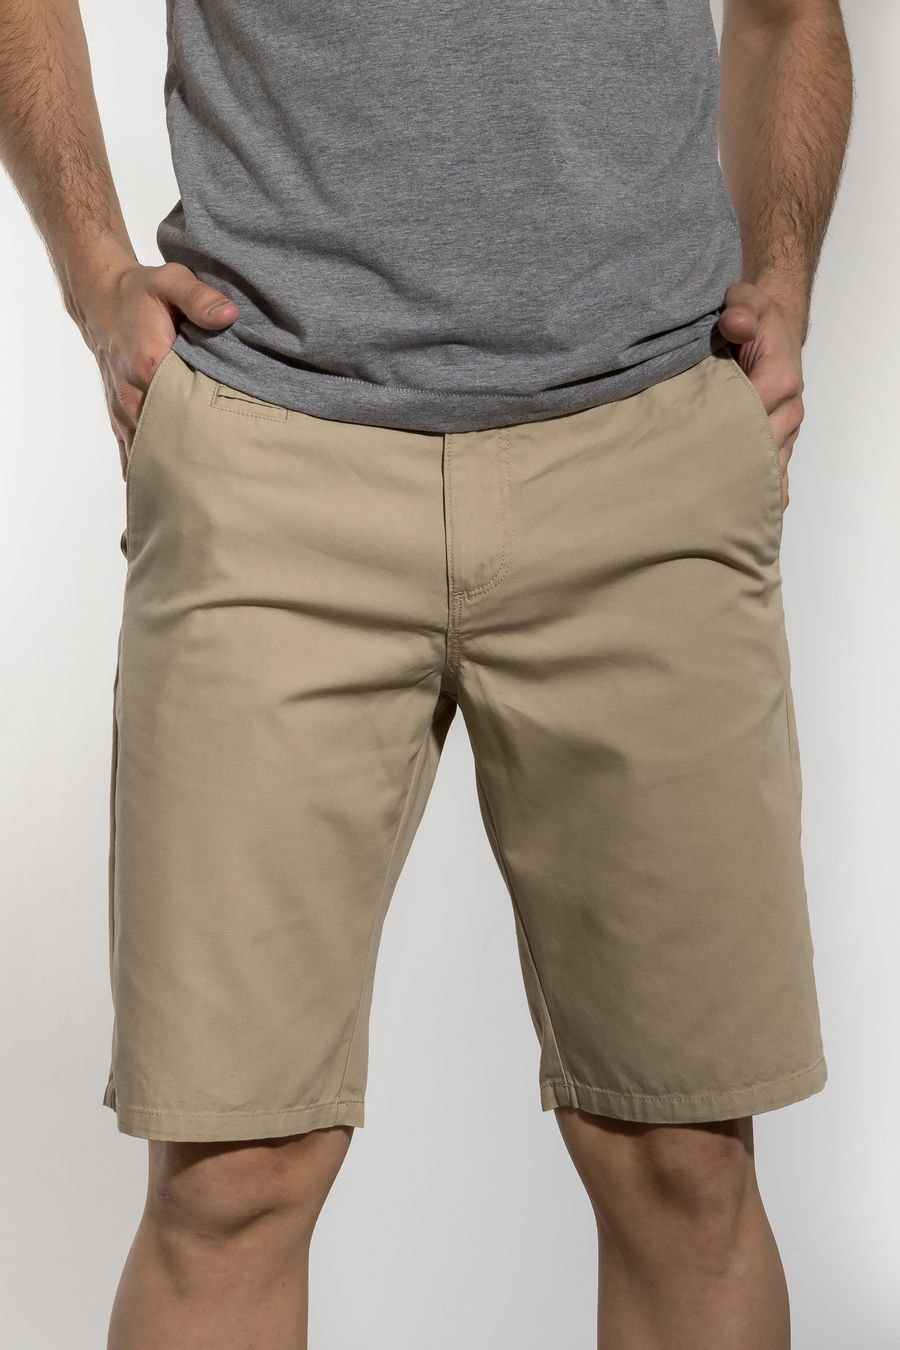 BERMUDA-BE-BASIC-KHAKI